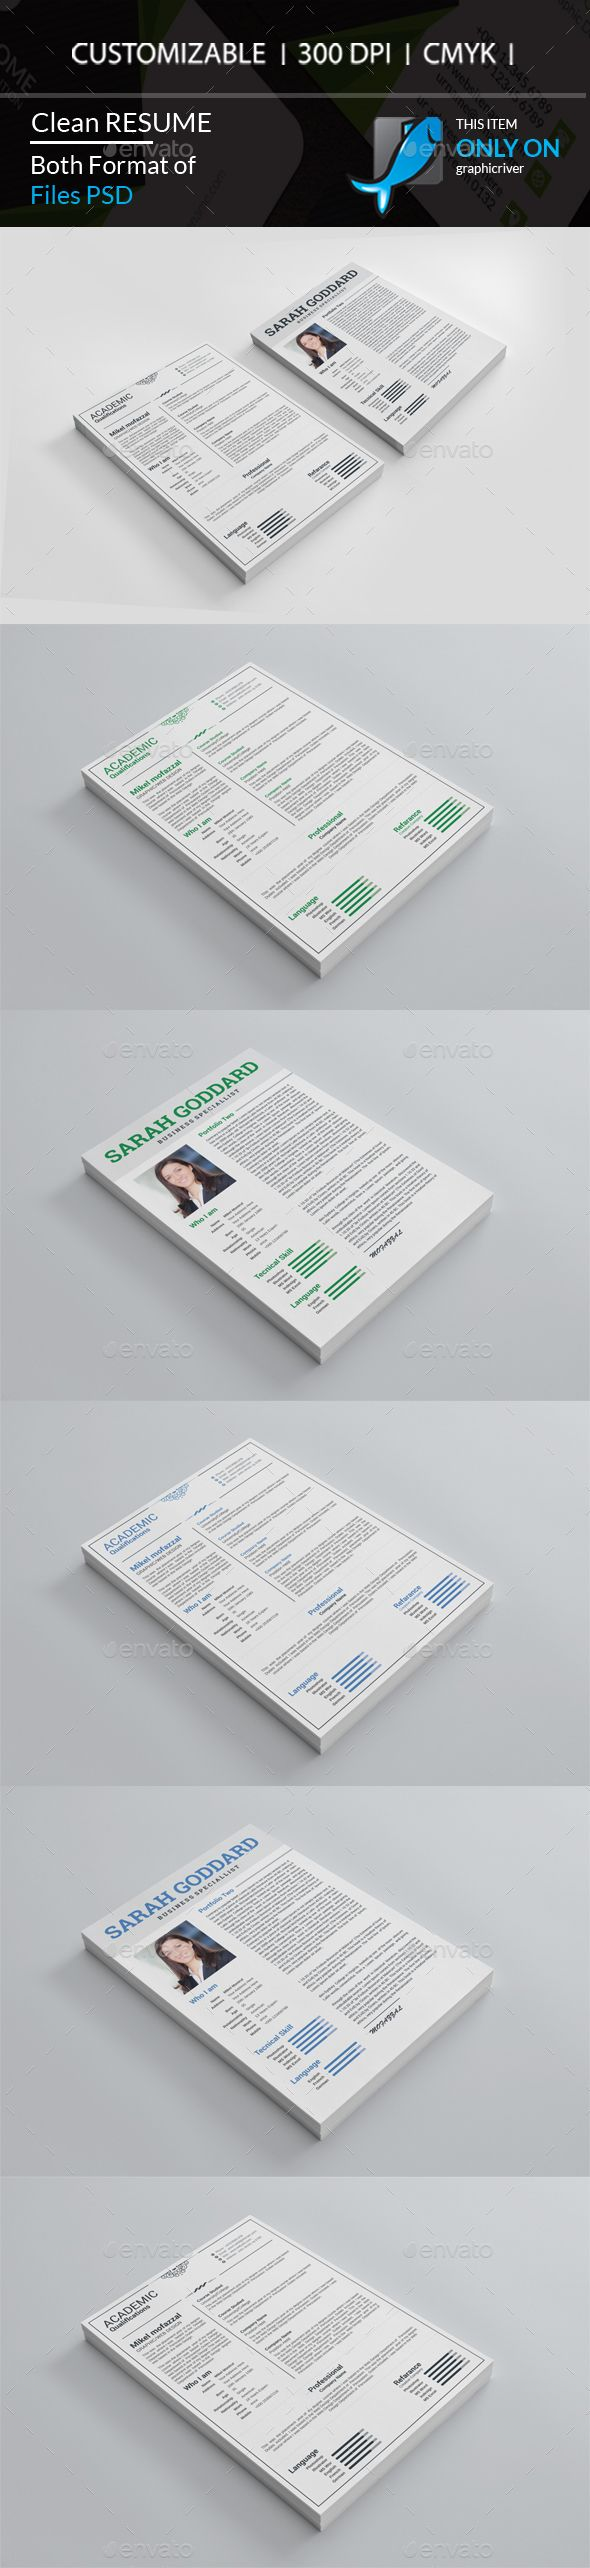 19 best Resume images on Pinterest | Cv design, Resume ideas and ...